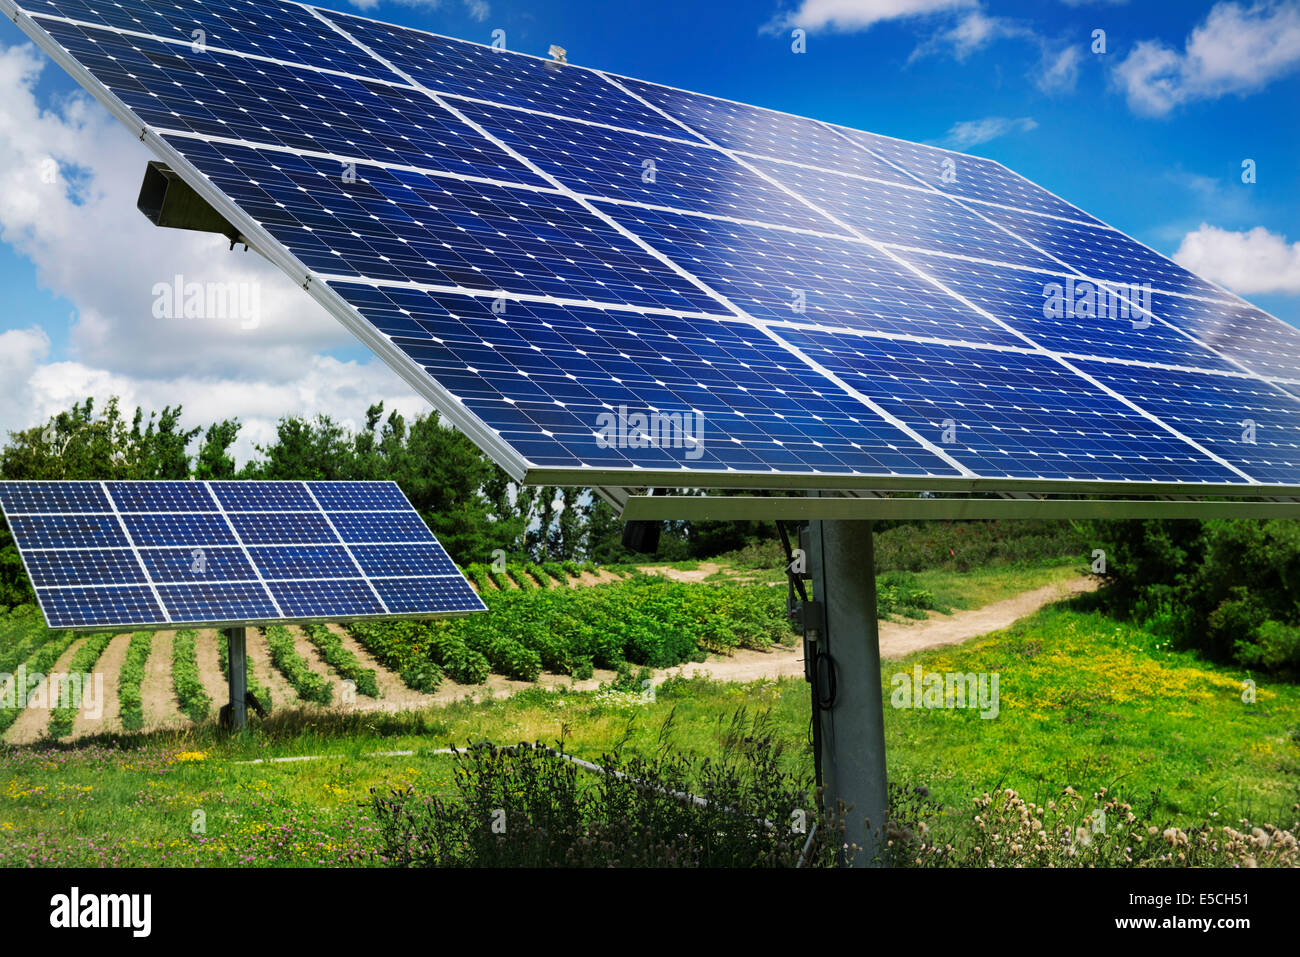 Solar panels with sunlight trackers on a farm in Milton, Ontario, Canada. - Stock Image